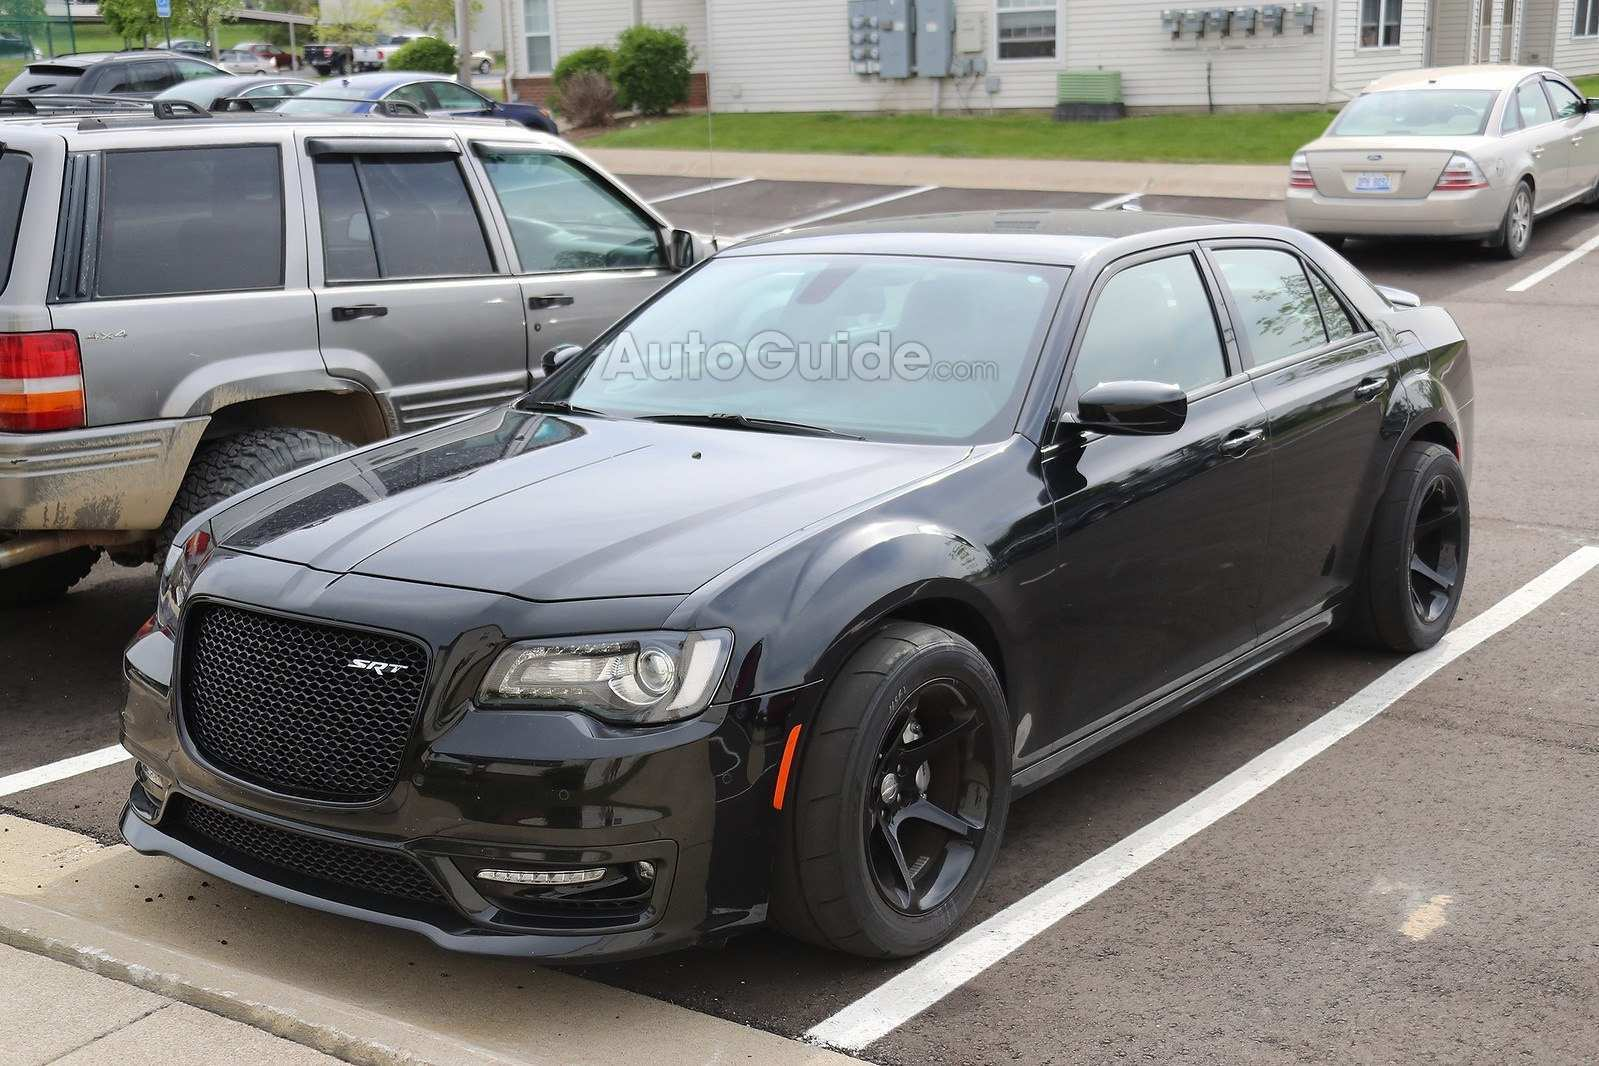 13 A 2020 Chrysler 300 Srt8 Engine